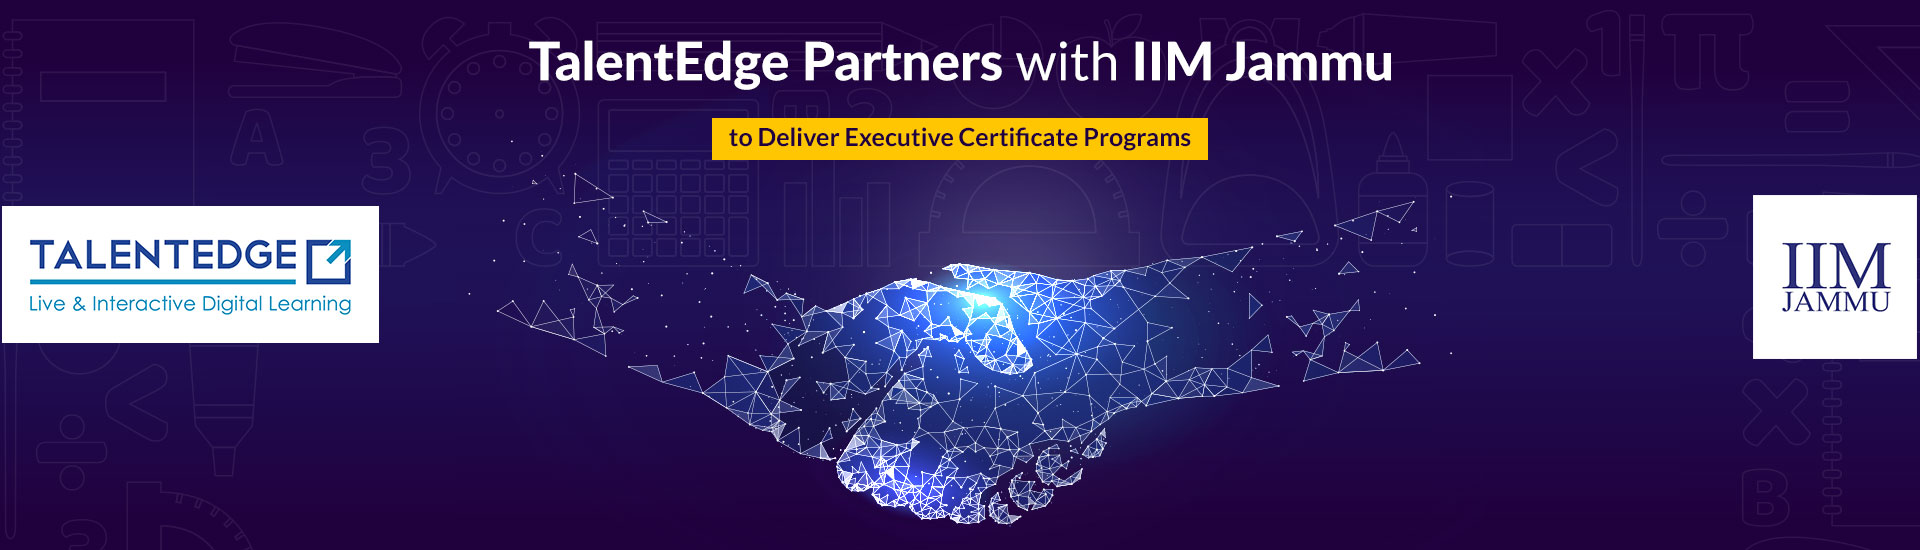 IIM jammu partnered with talentedge